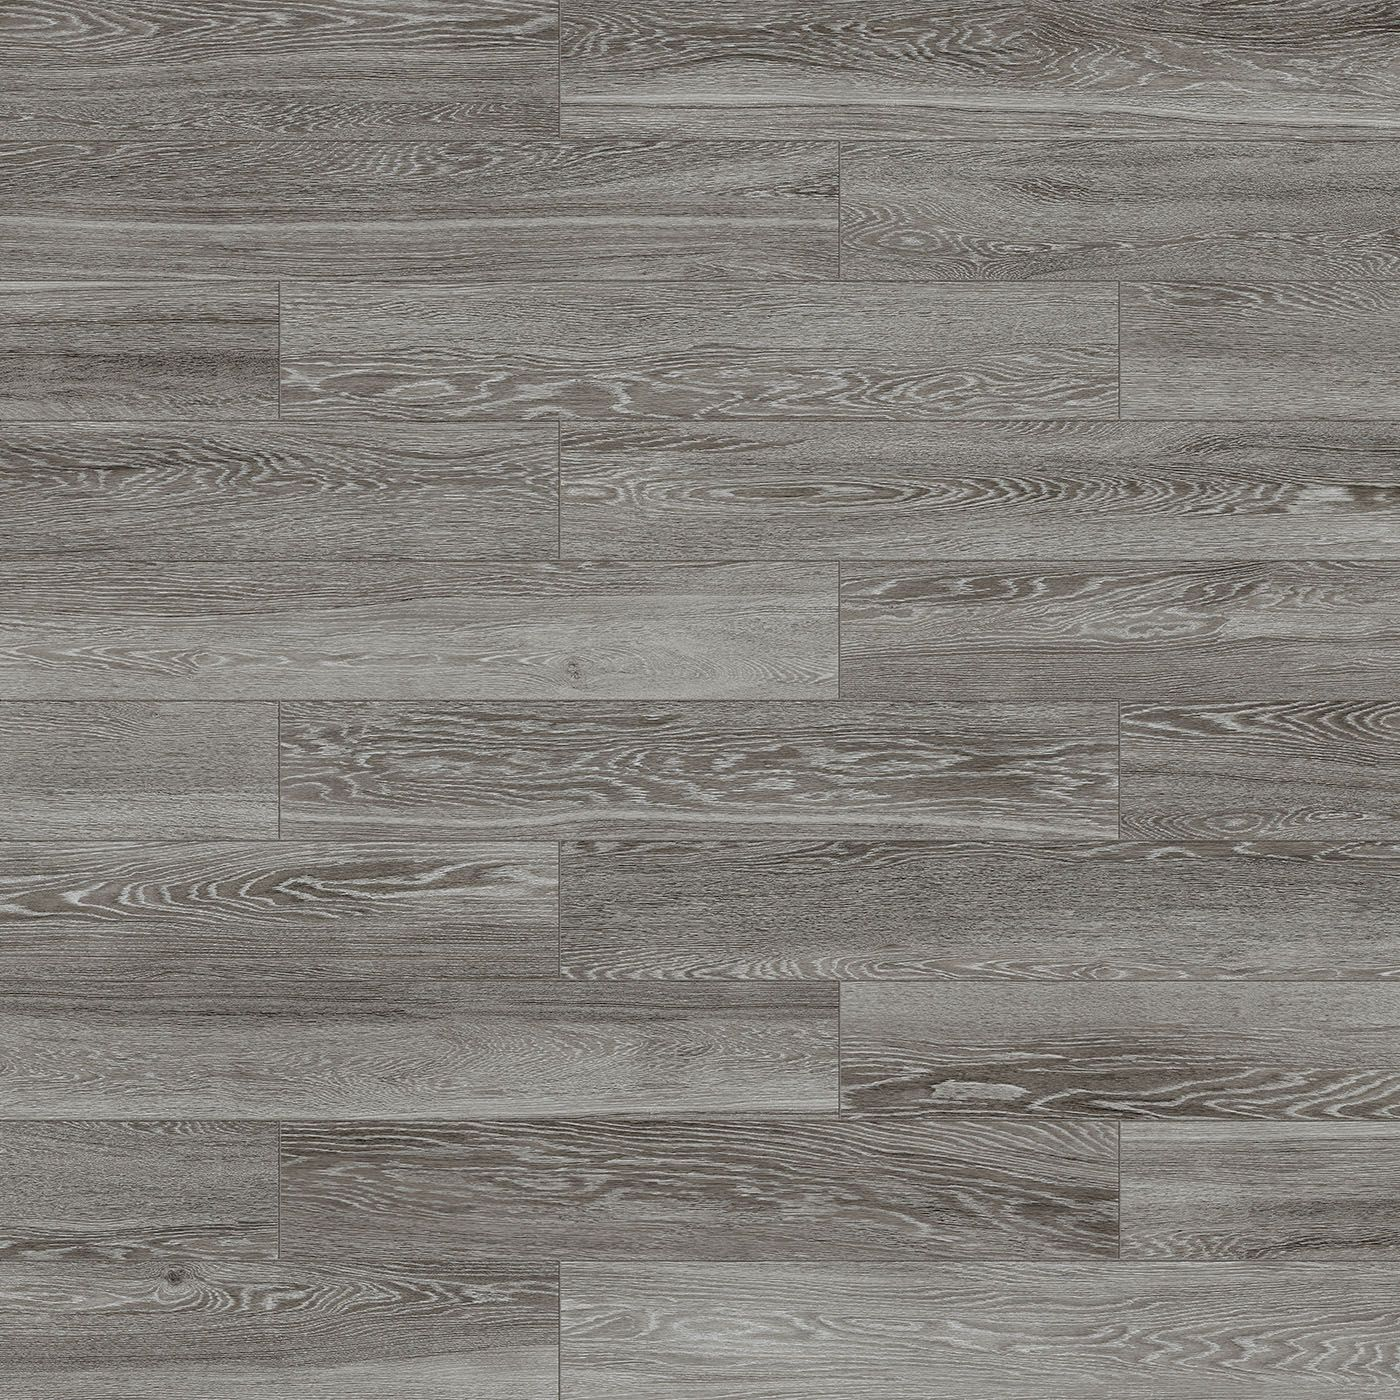 Anatolia Aspen Grey Ridge Stocked In 4 X 24 Wood Plank Tile Available In 6 X 36 8 X 48 Also A Wood Floor Texture Grey Wood Floors Wood Plank